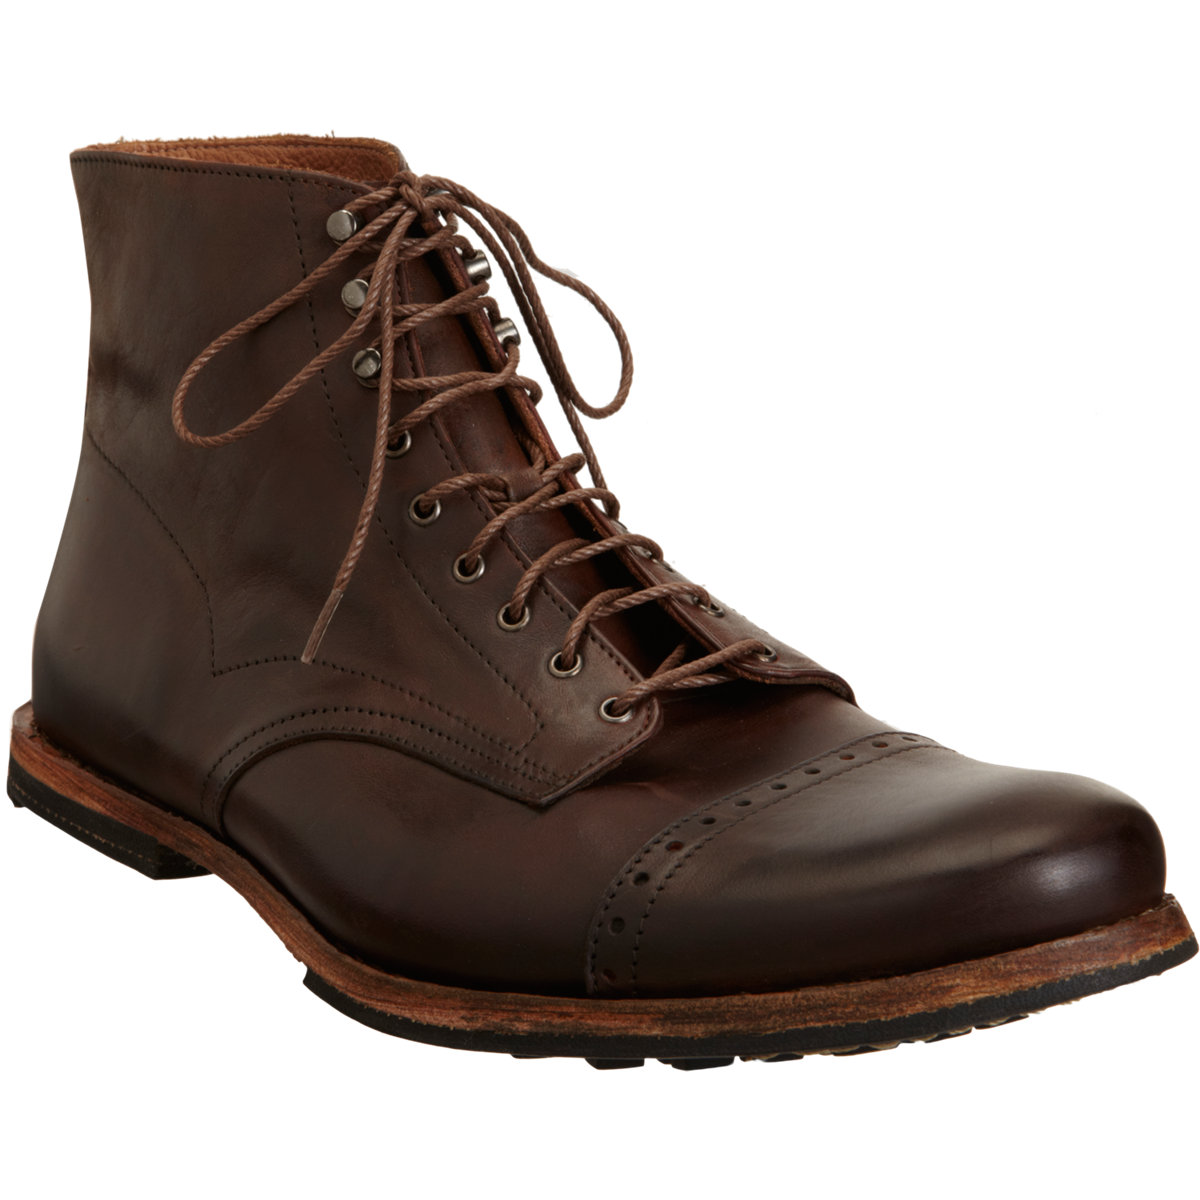 timberland wodehouse cap toe boot in brown for lyst